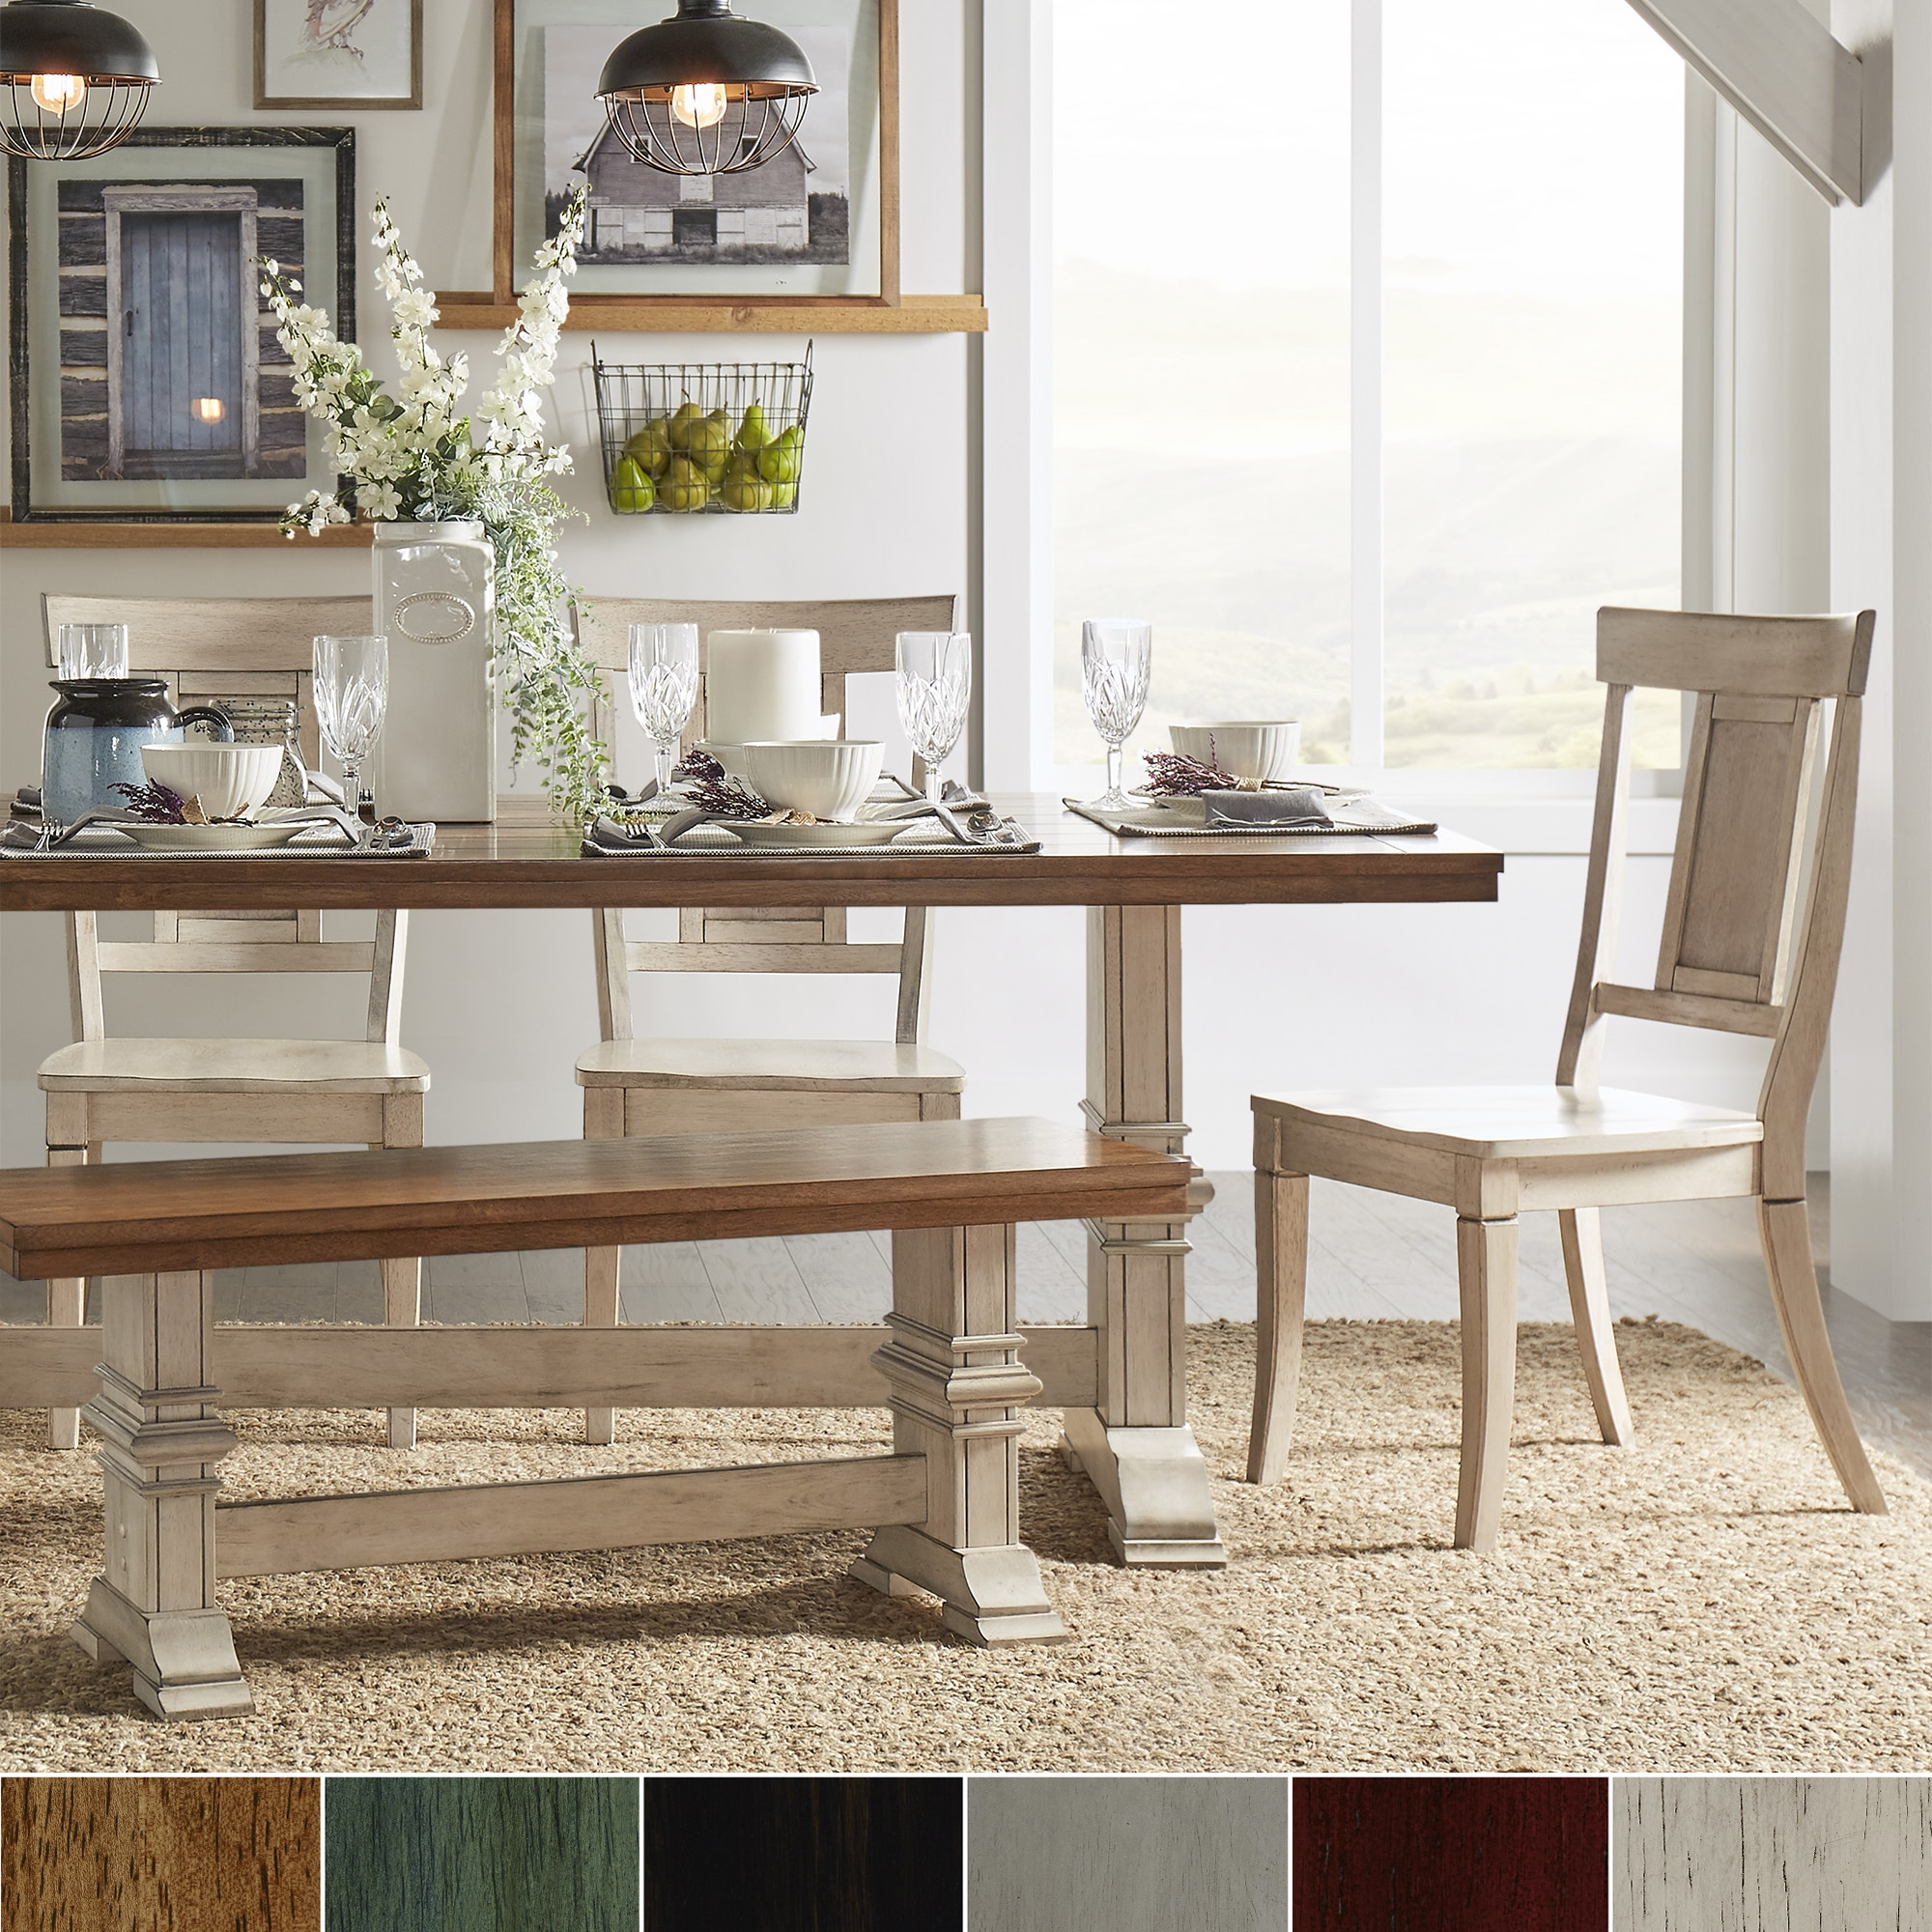 Eleanor Antique White Farmhouse Trestle Base 6 Piece Dining Set   Panel  Back By INSPIRE